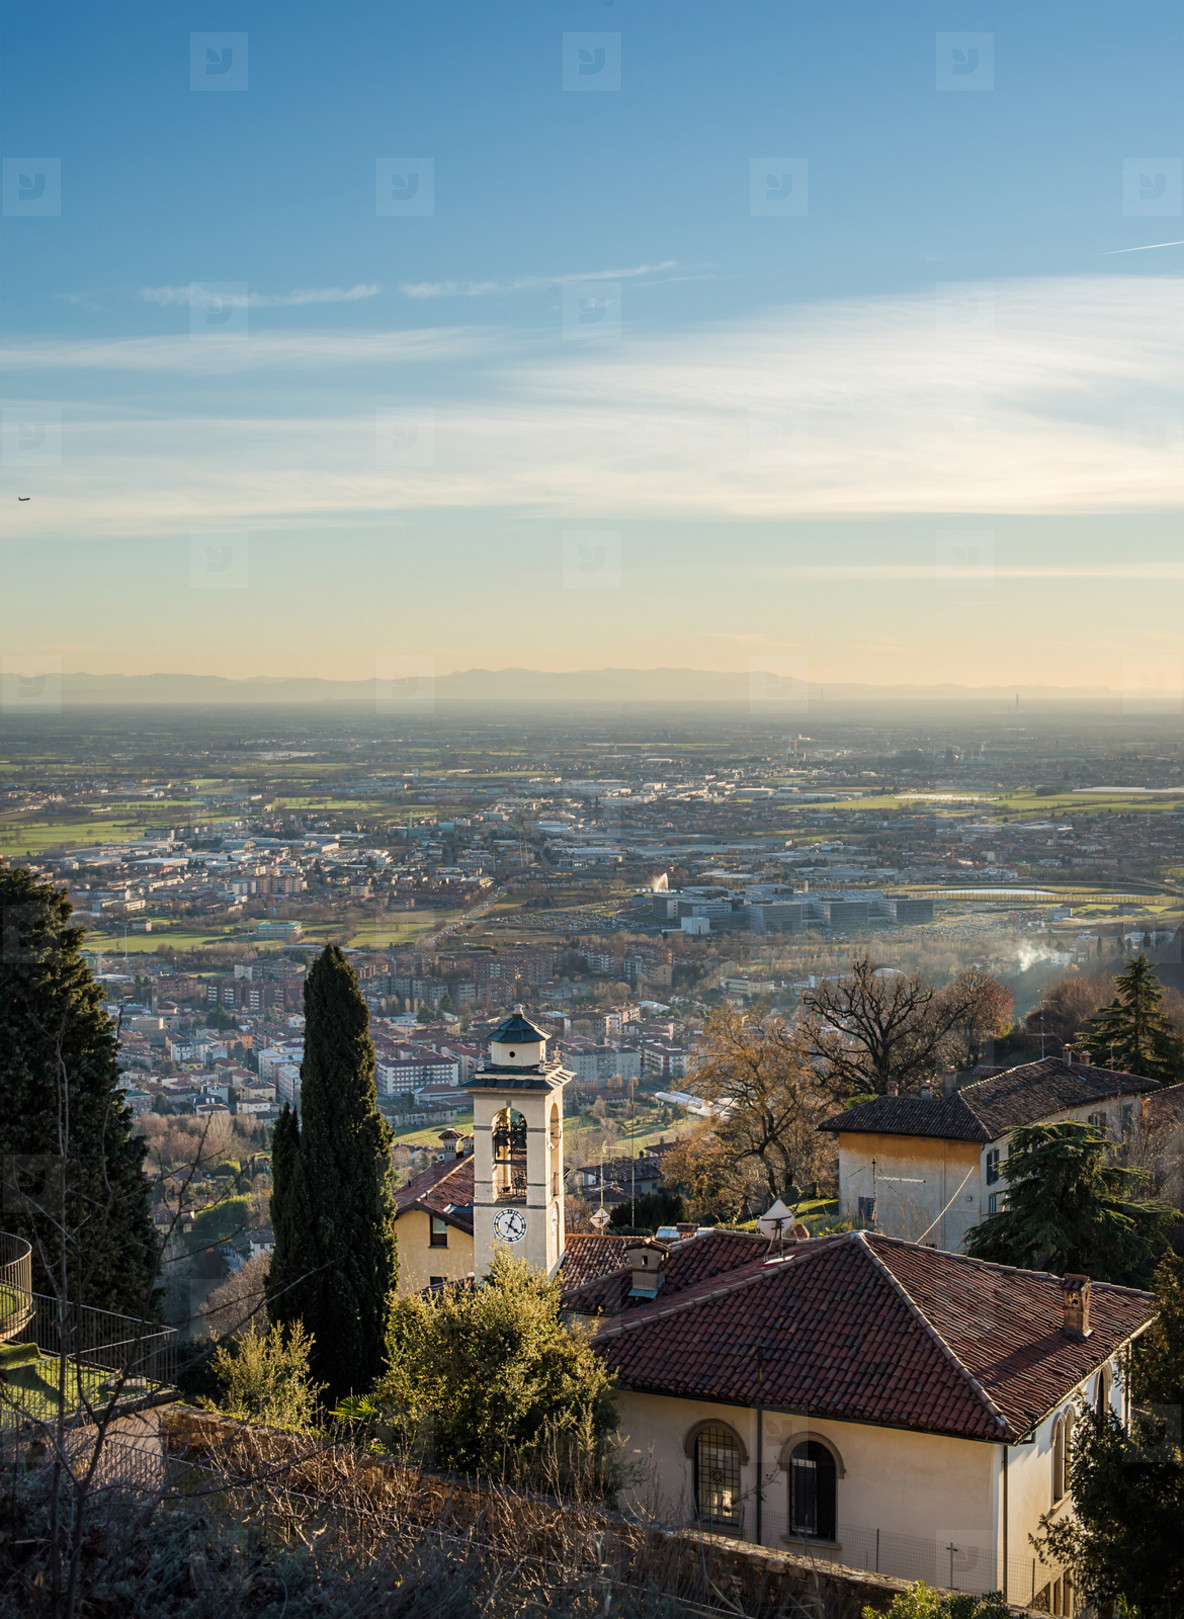 View over Citta Alta or Old Town buildings in the ancient city of Bergamo  Lombardia  Italy on a clear day  taken from San Virgilio point